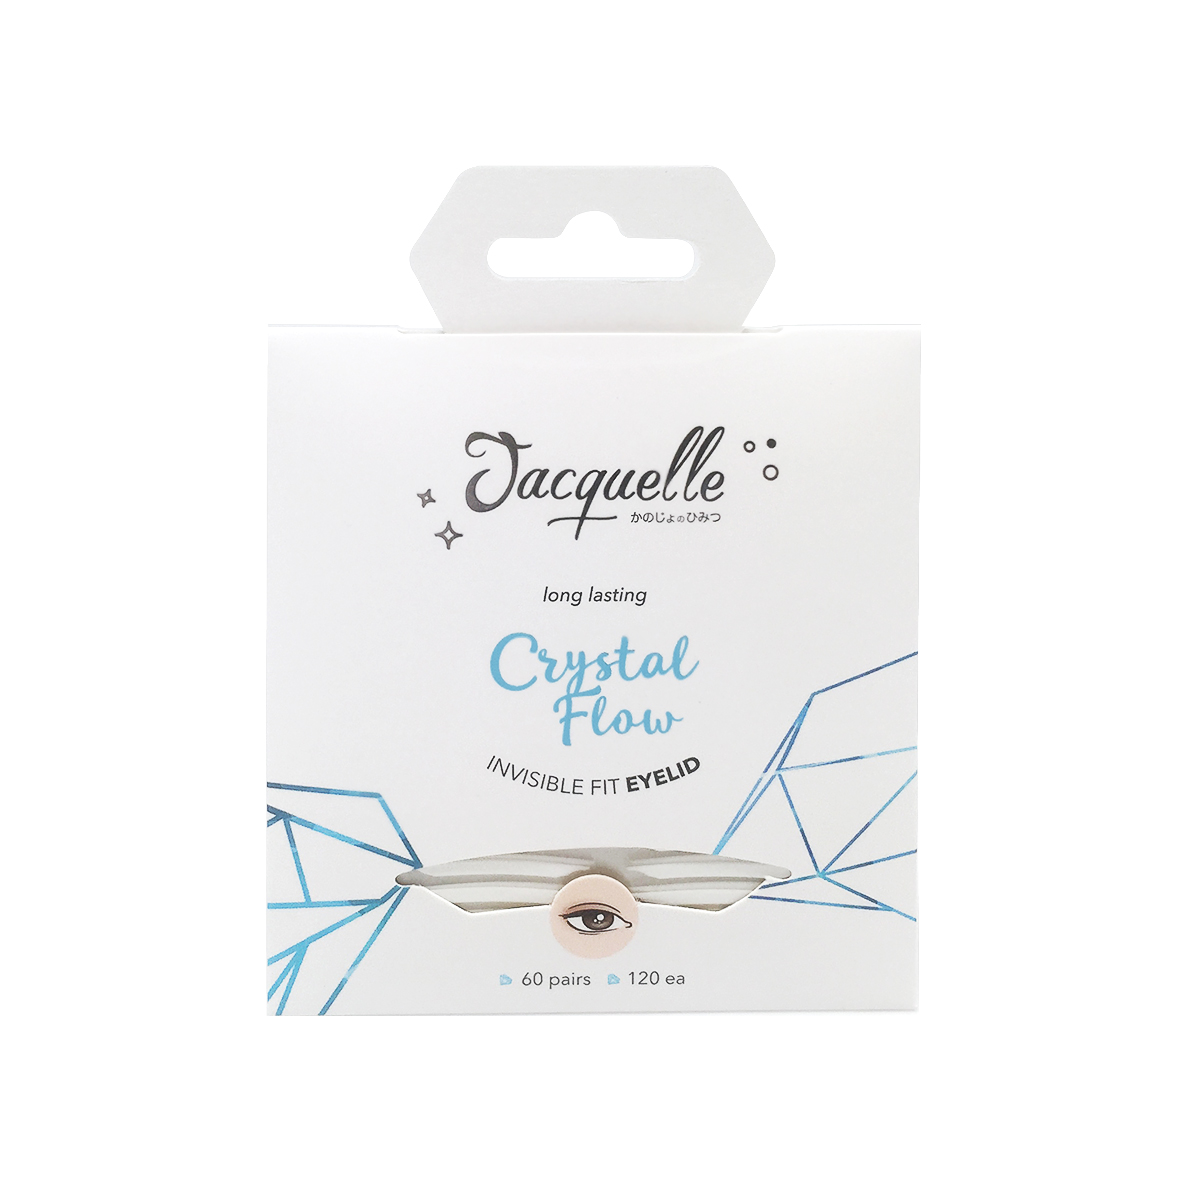 Jacquelle Invisible Fit Eyelid - Crystal Flow thumbnail